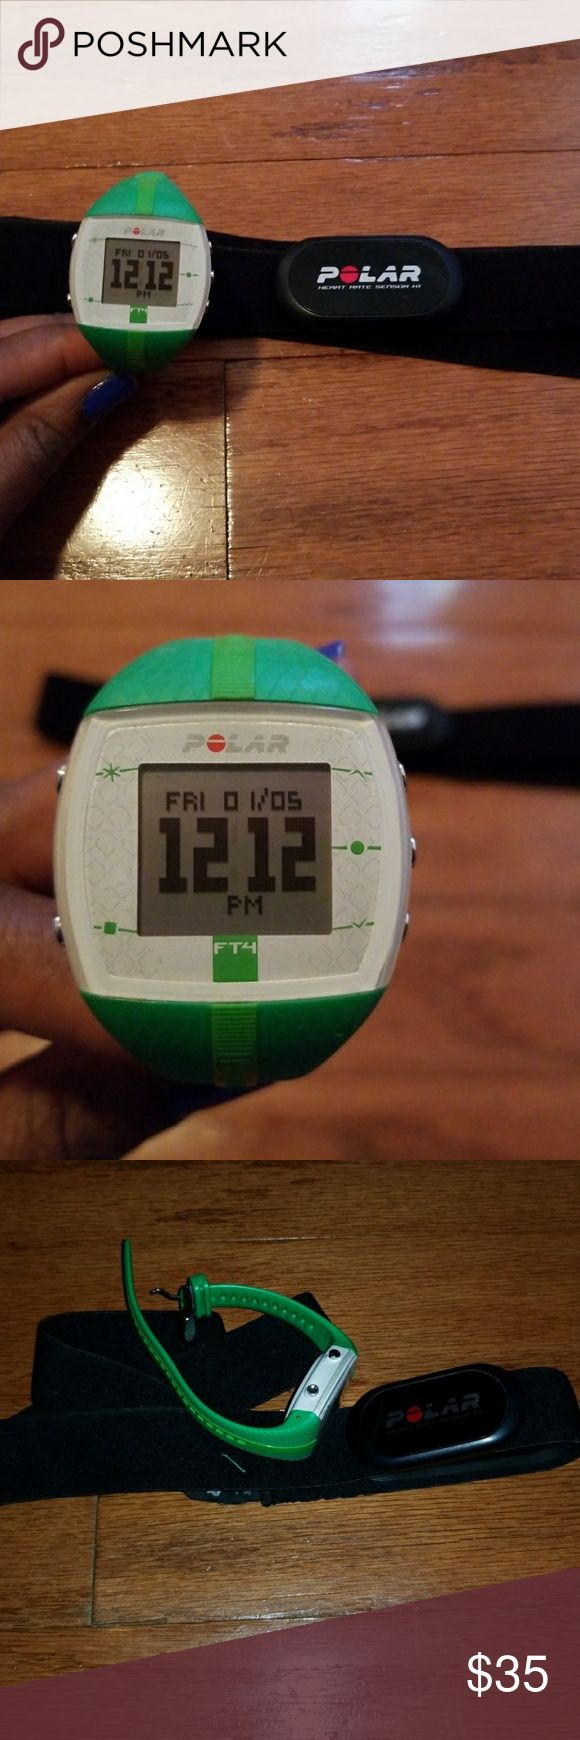 Polar Fitness Watch with Chest Strap Green Polar Fitness Watch with Chest Strap Tracks Calories Burned Heart Rate Zones  Brand New Batteries in Strap and Watch Polar Accessories Watches